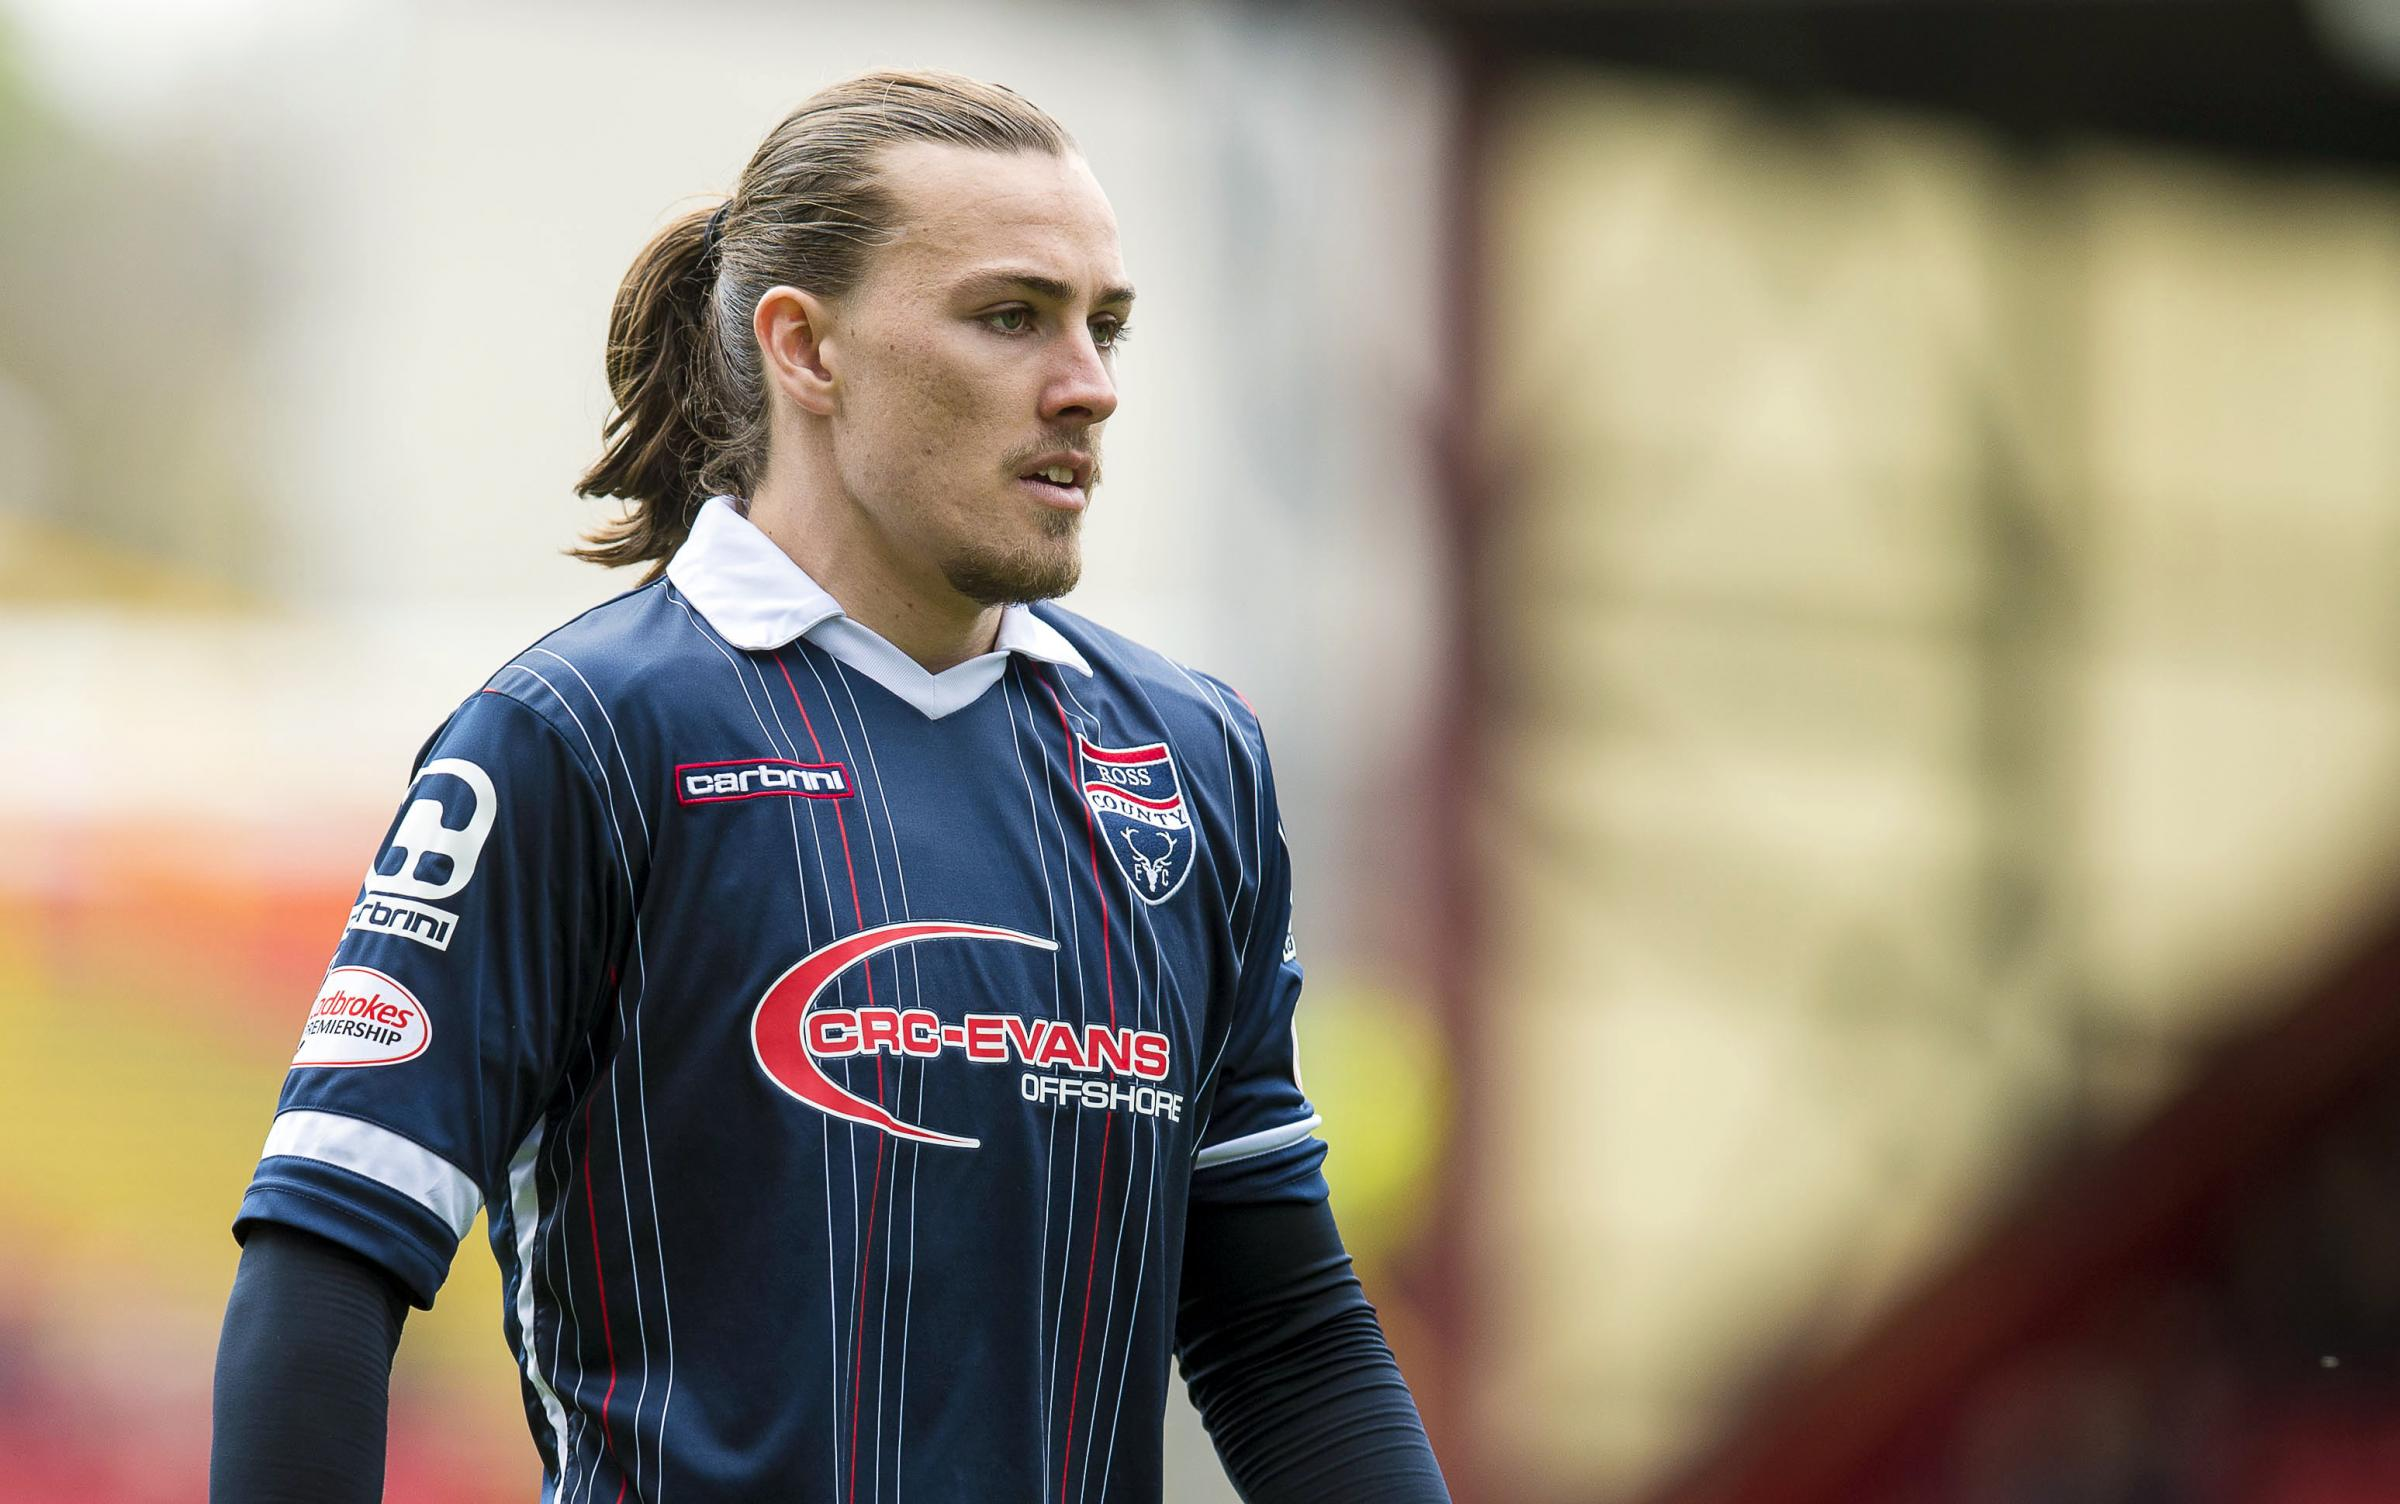 Hibs sign former Ross County midfielder Jackson Irvine following Hull City exit